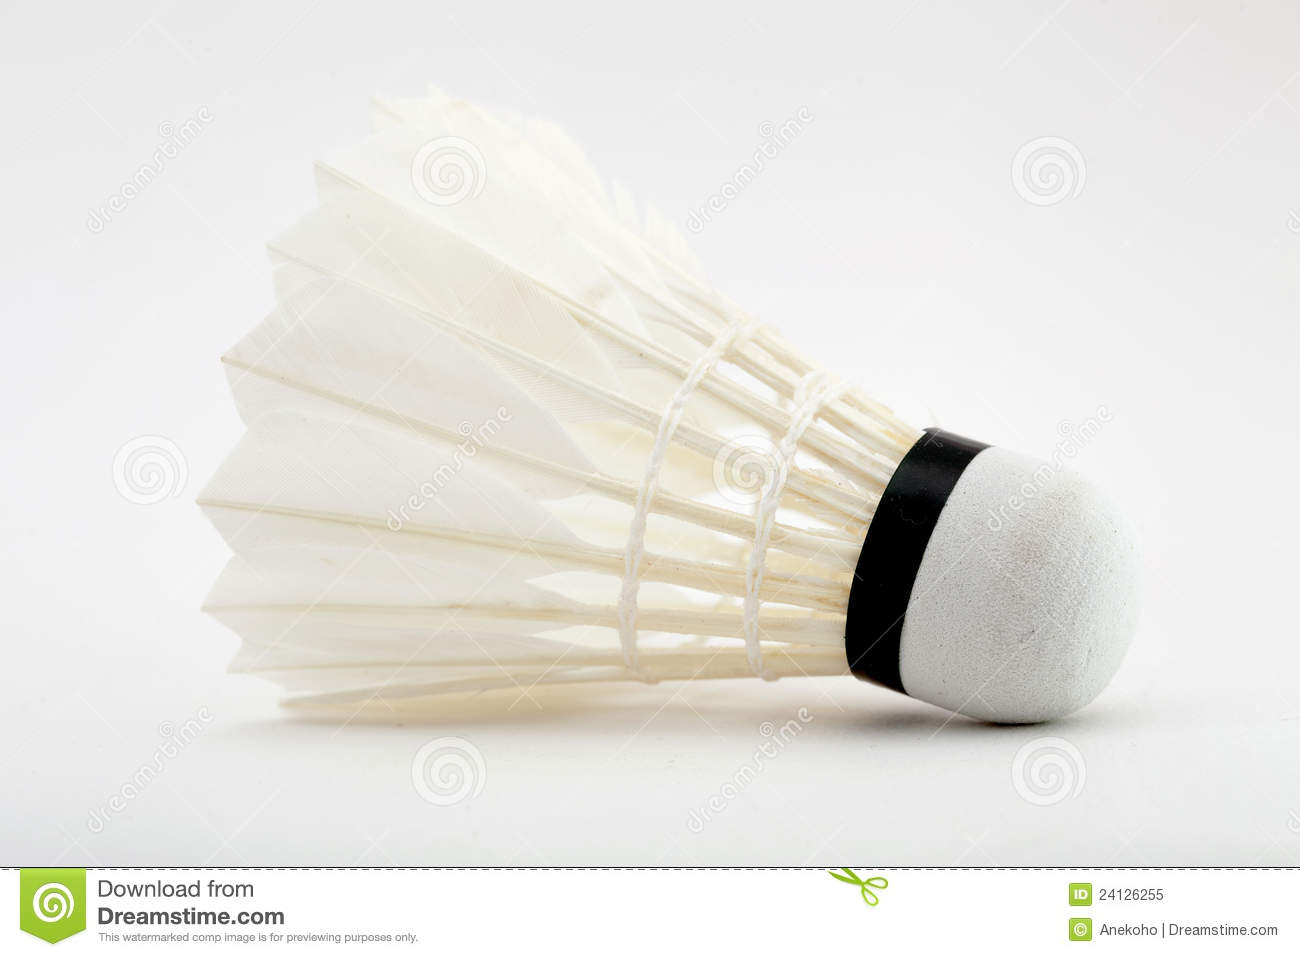 Shuttlecock do Badminton no branco